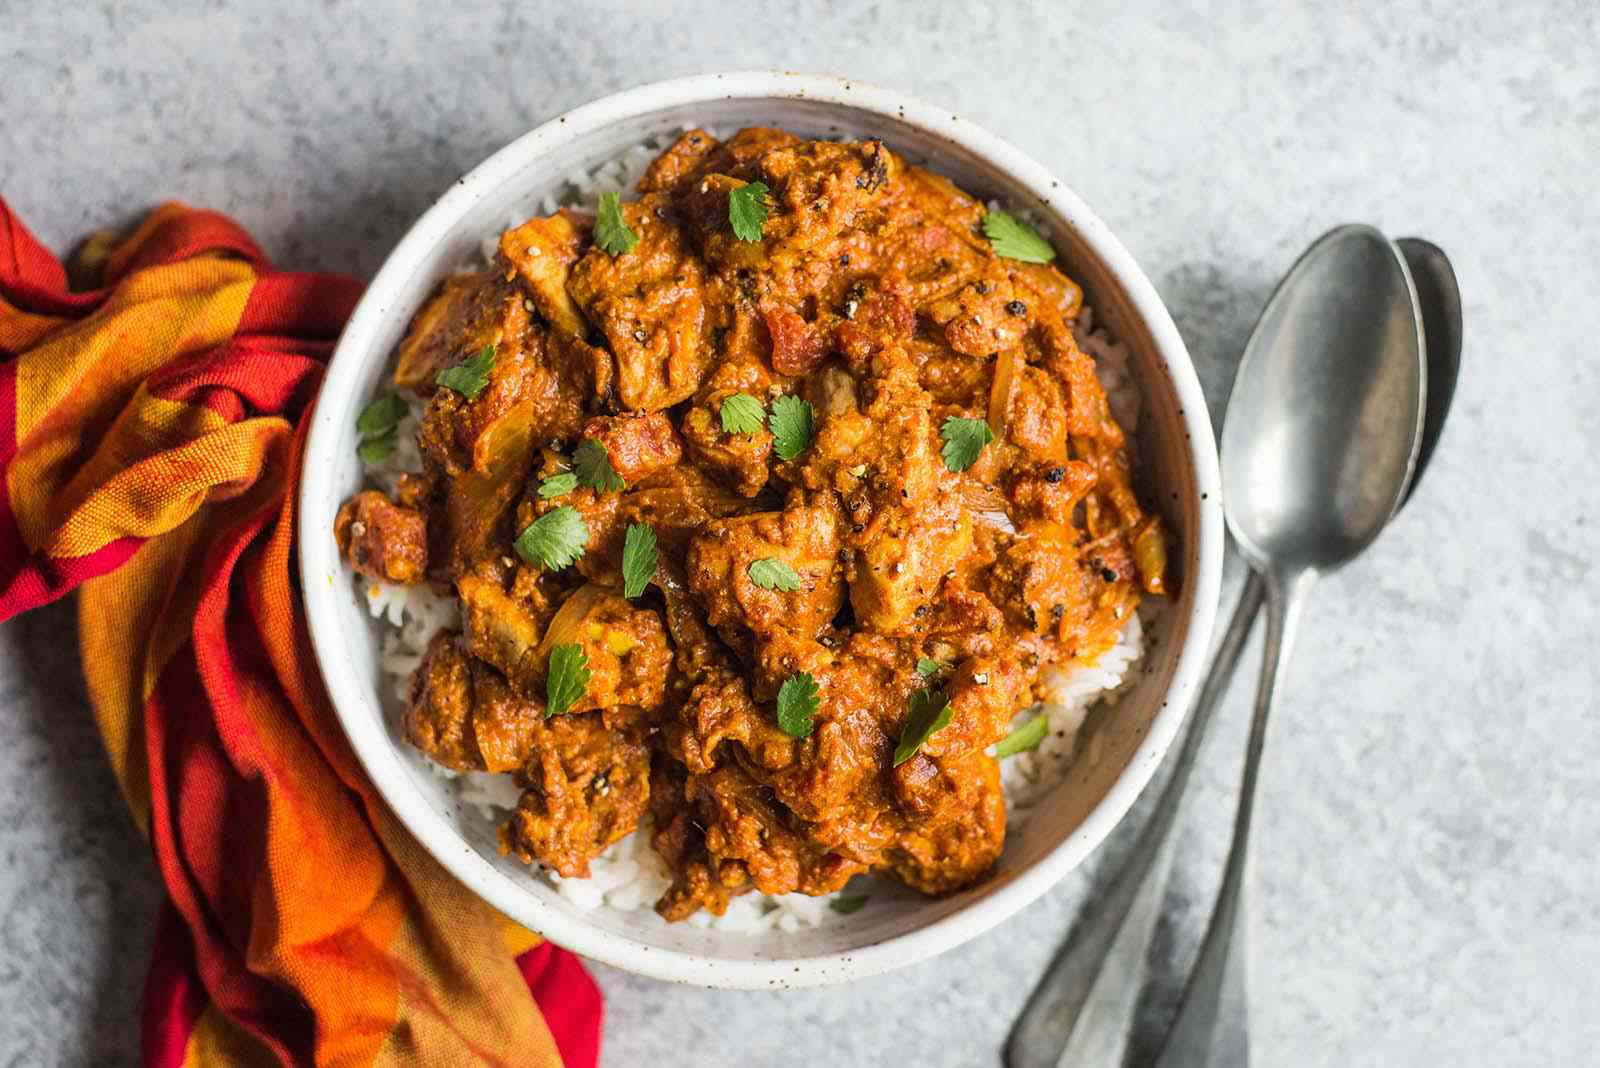 Chicken Tikka Masala finished dish in a bowl with spoons and rice